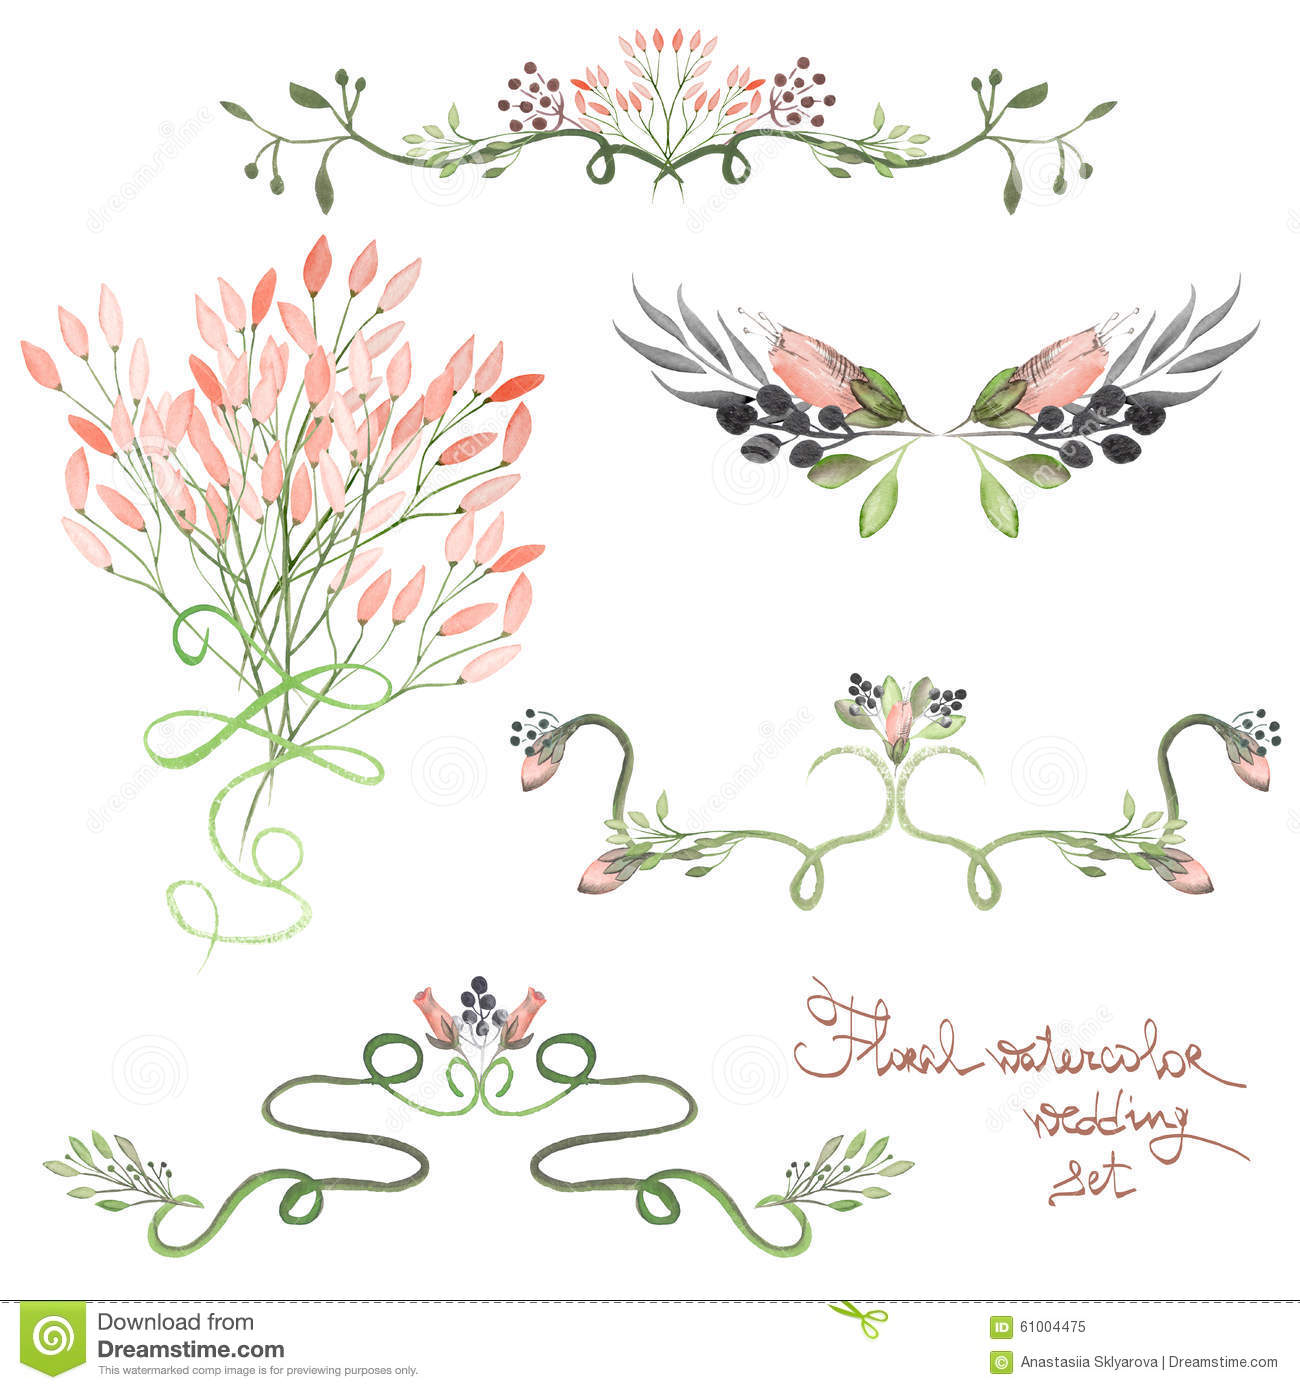 Wedding ornaments - Set With Frame Borders Floral Decorative Ornaments With Watercolor Flowers Leaves And Branches For